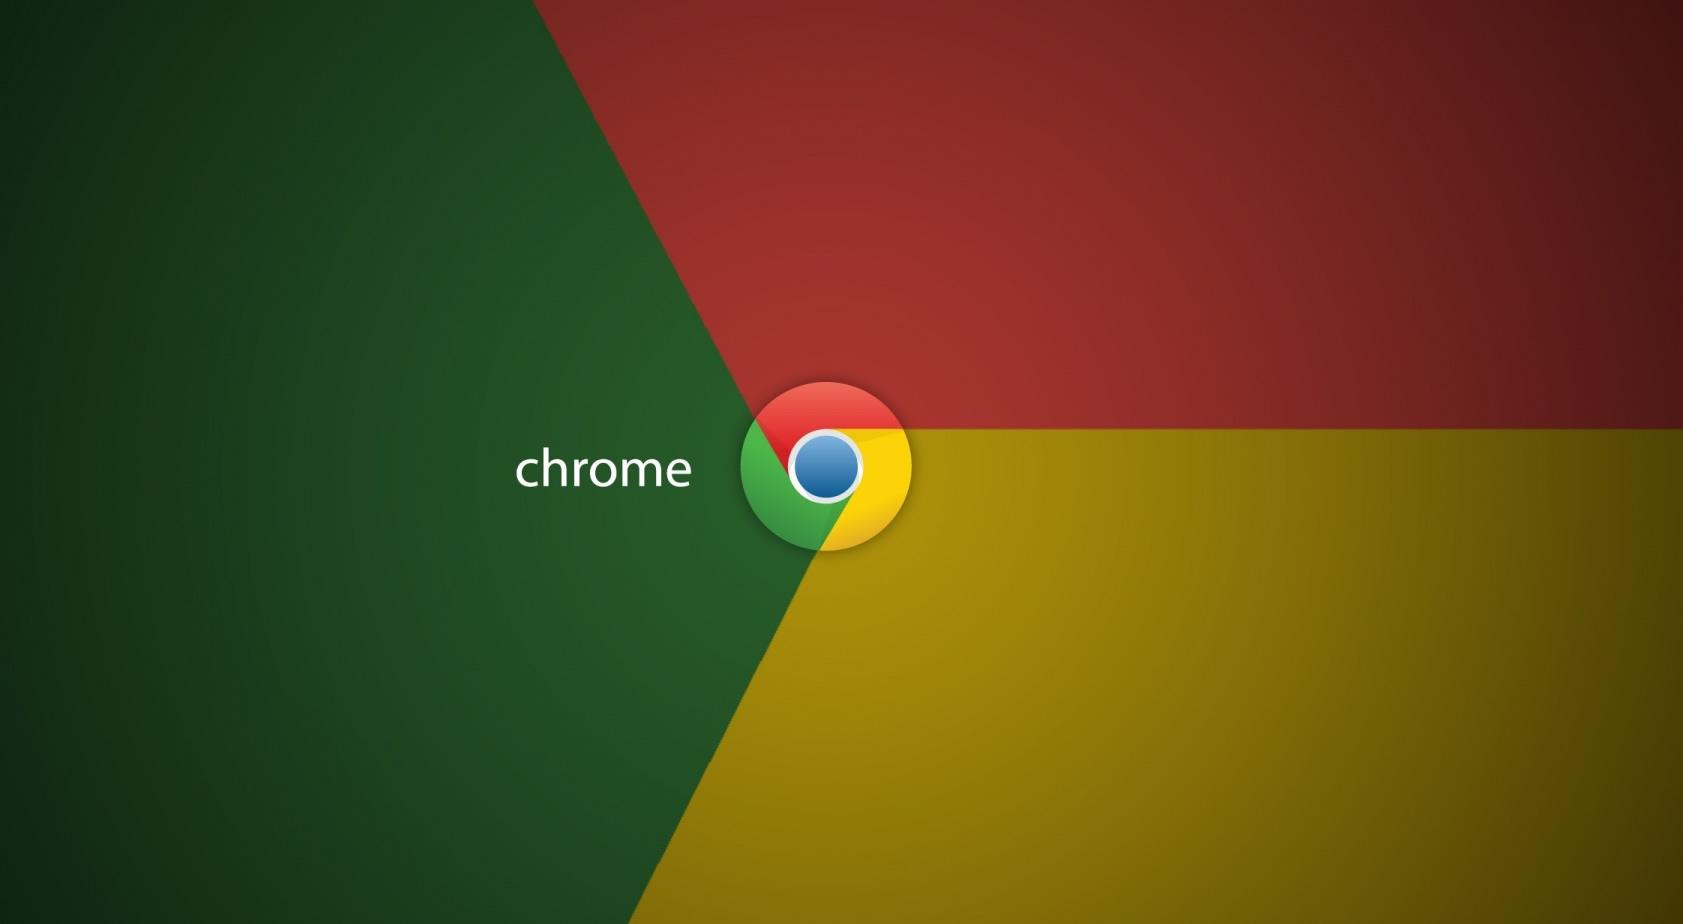 Google Chrome version 53.0.2785.97 APK Is Officially Here to Download